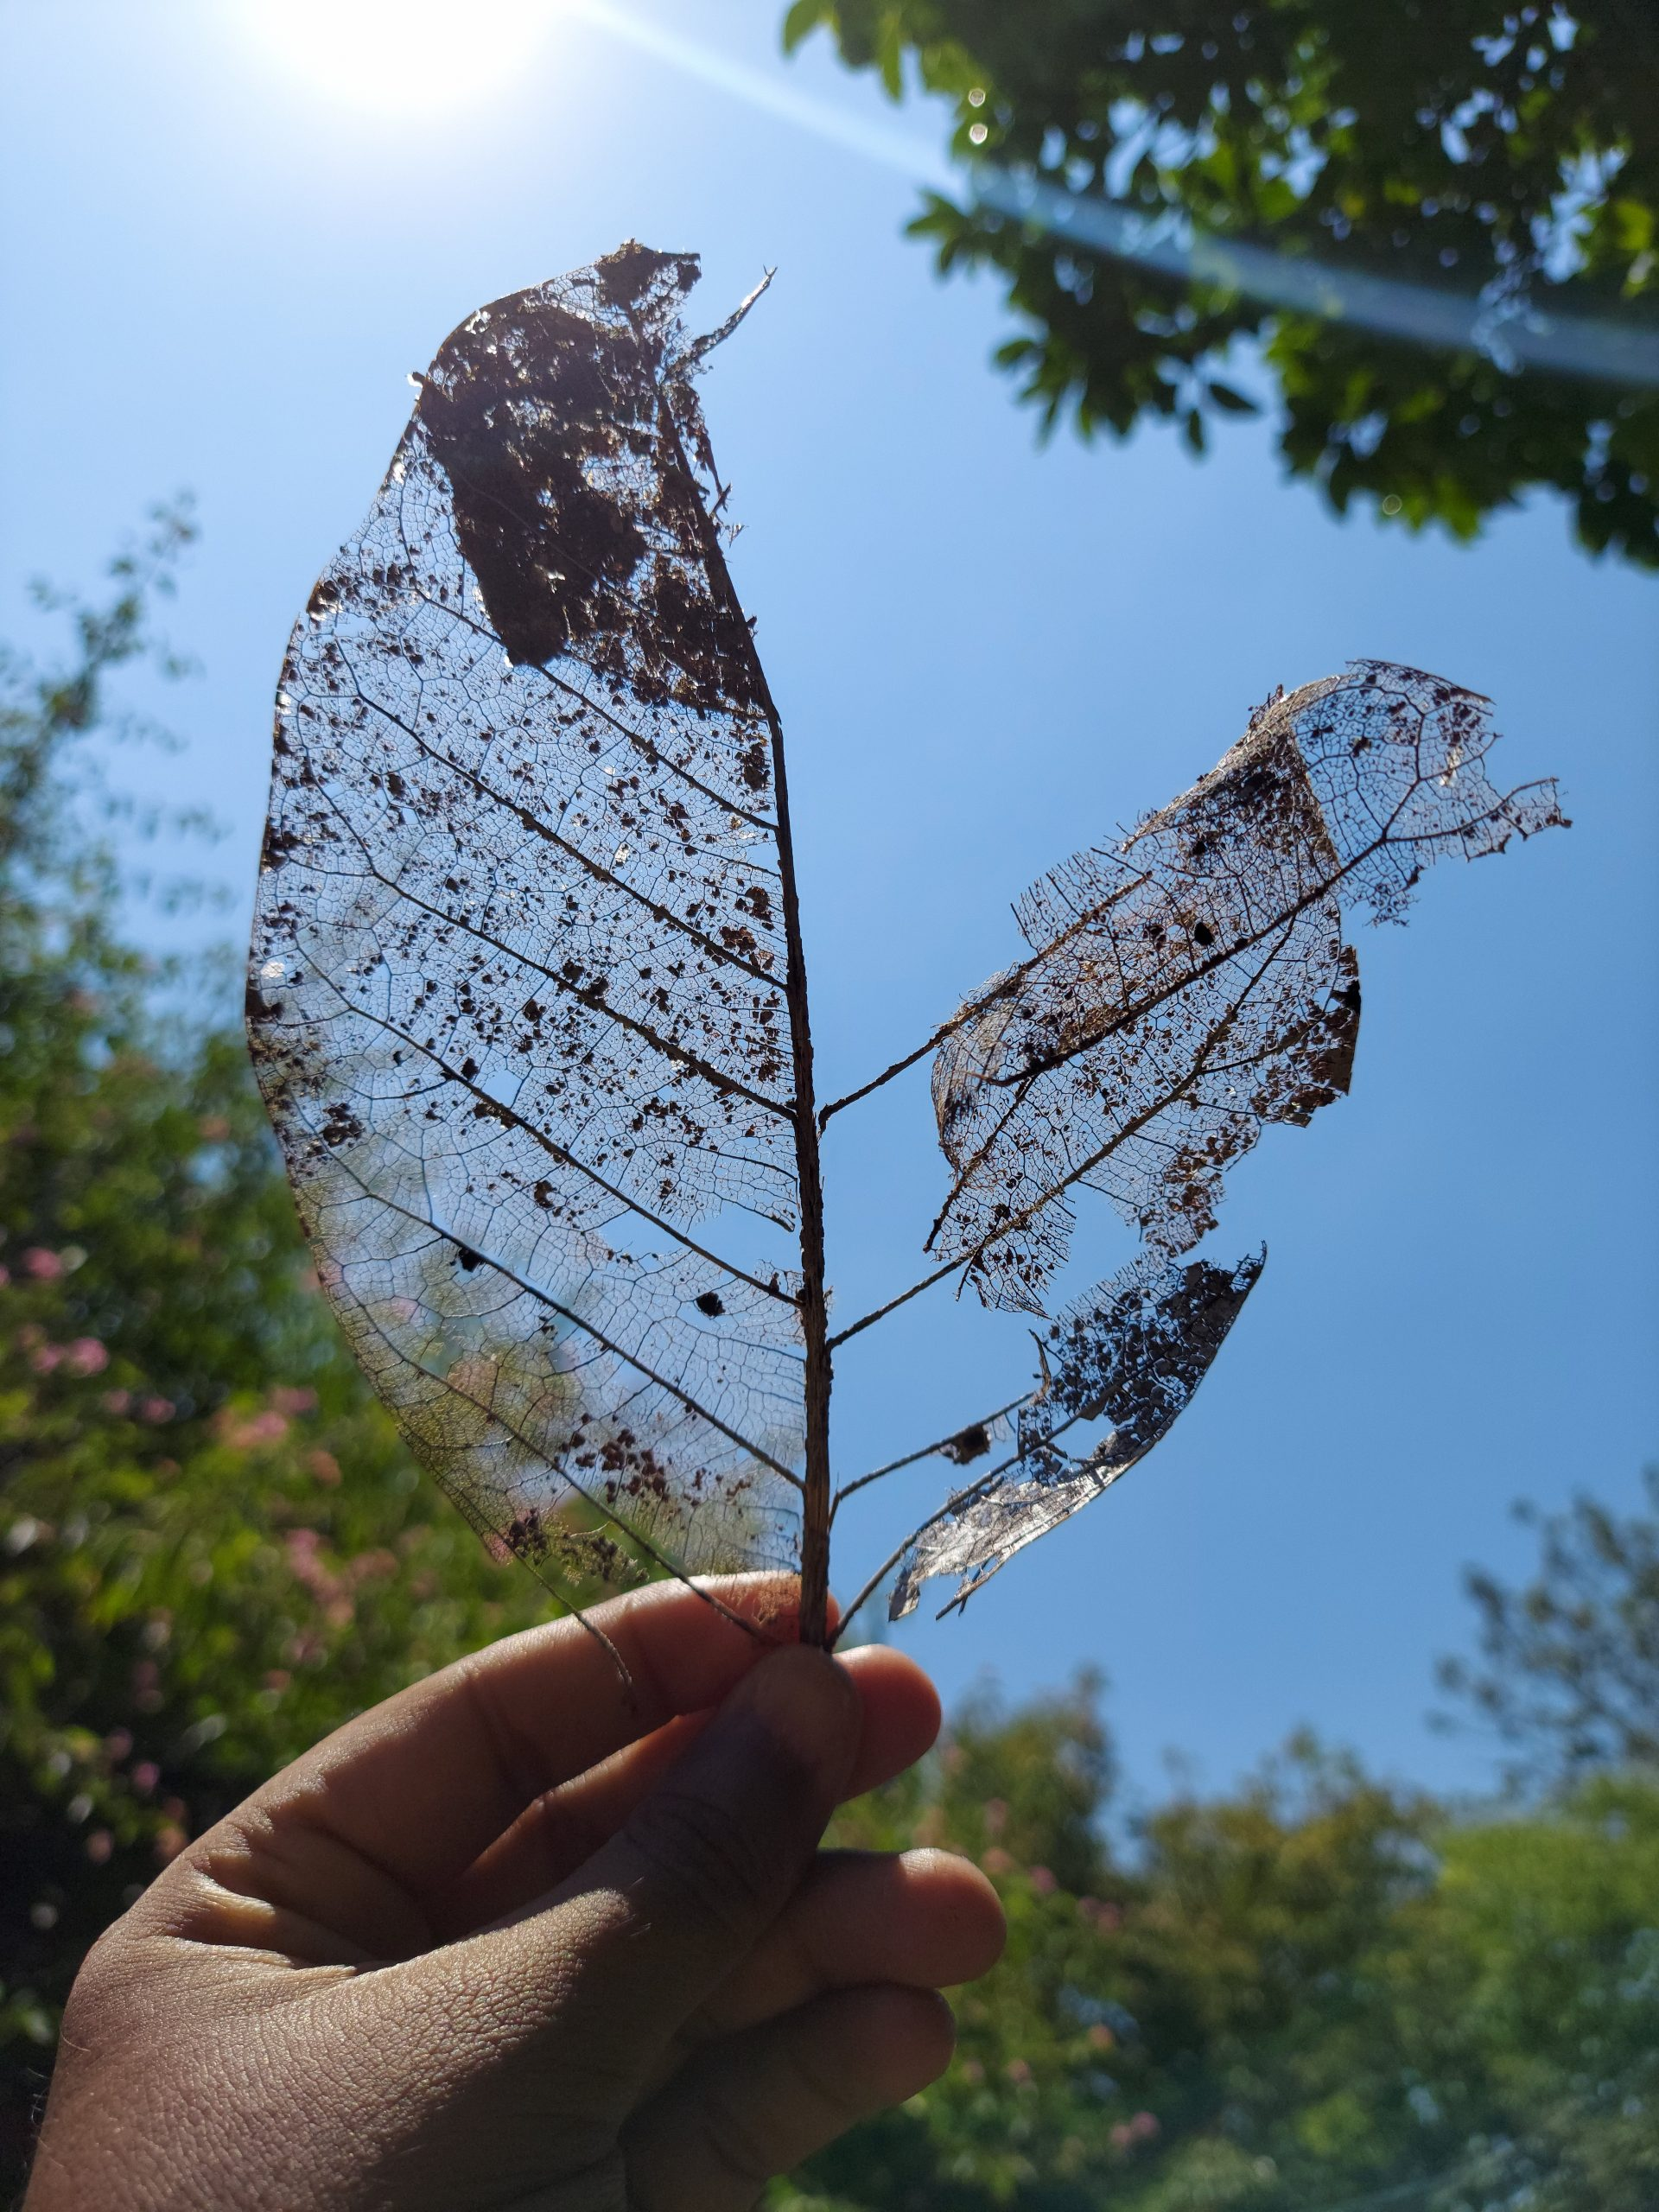 Holding an old leaf